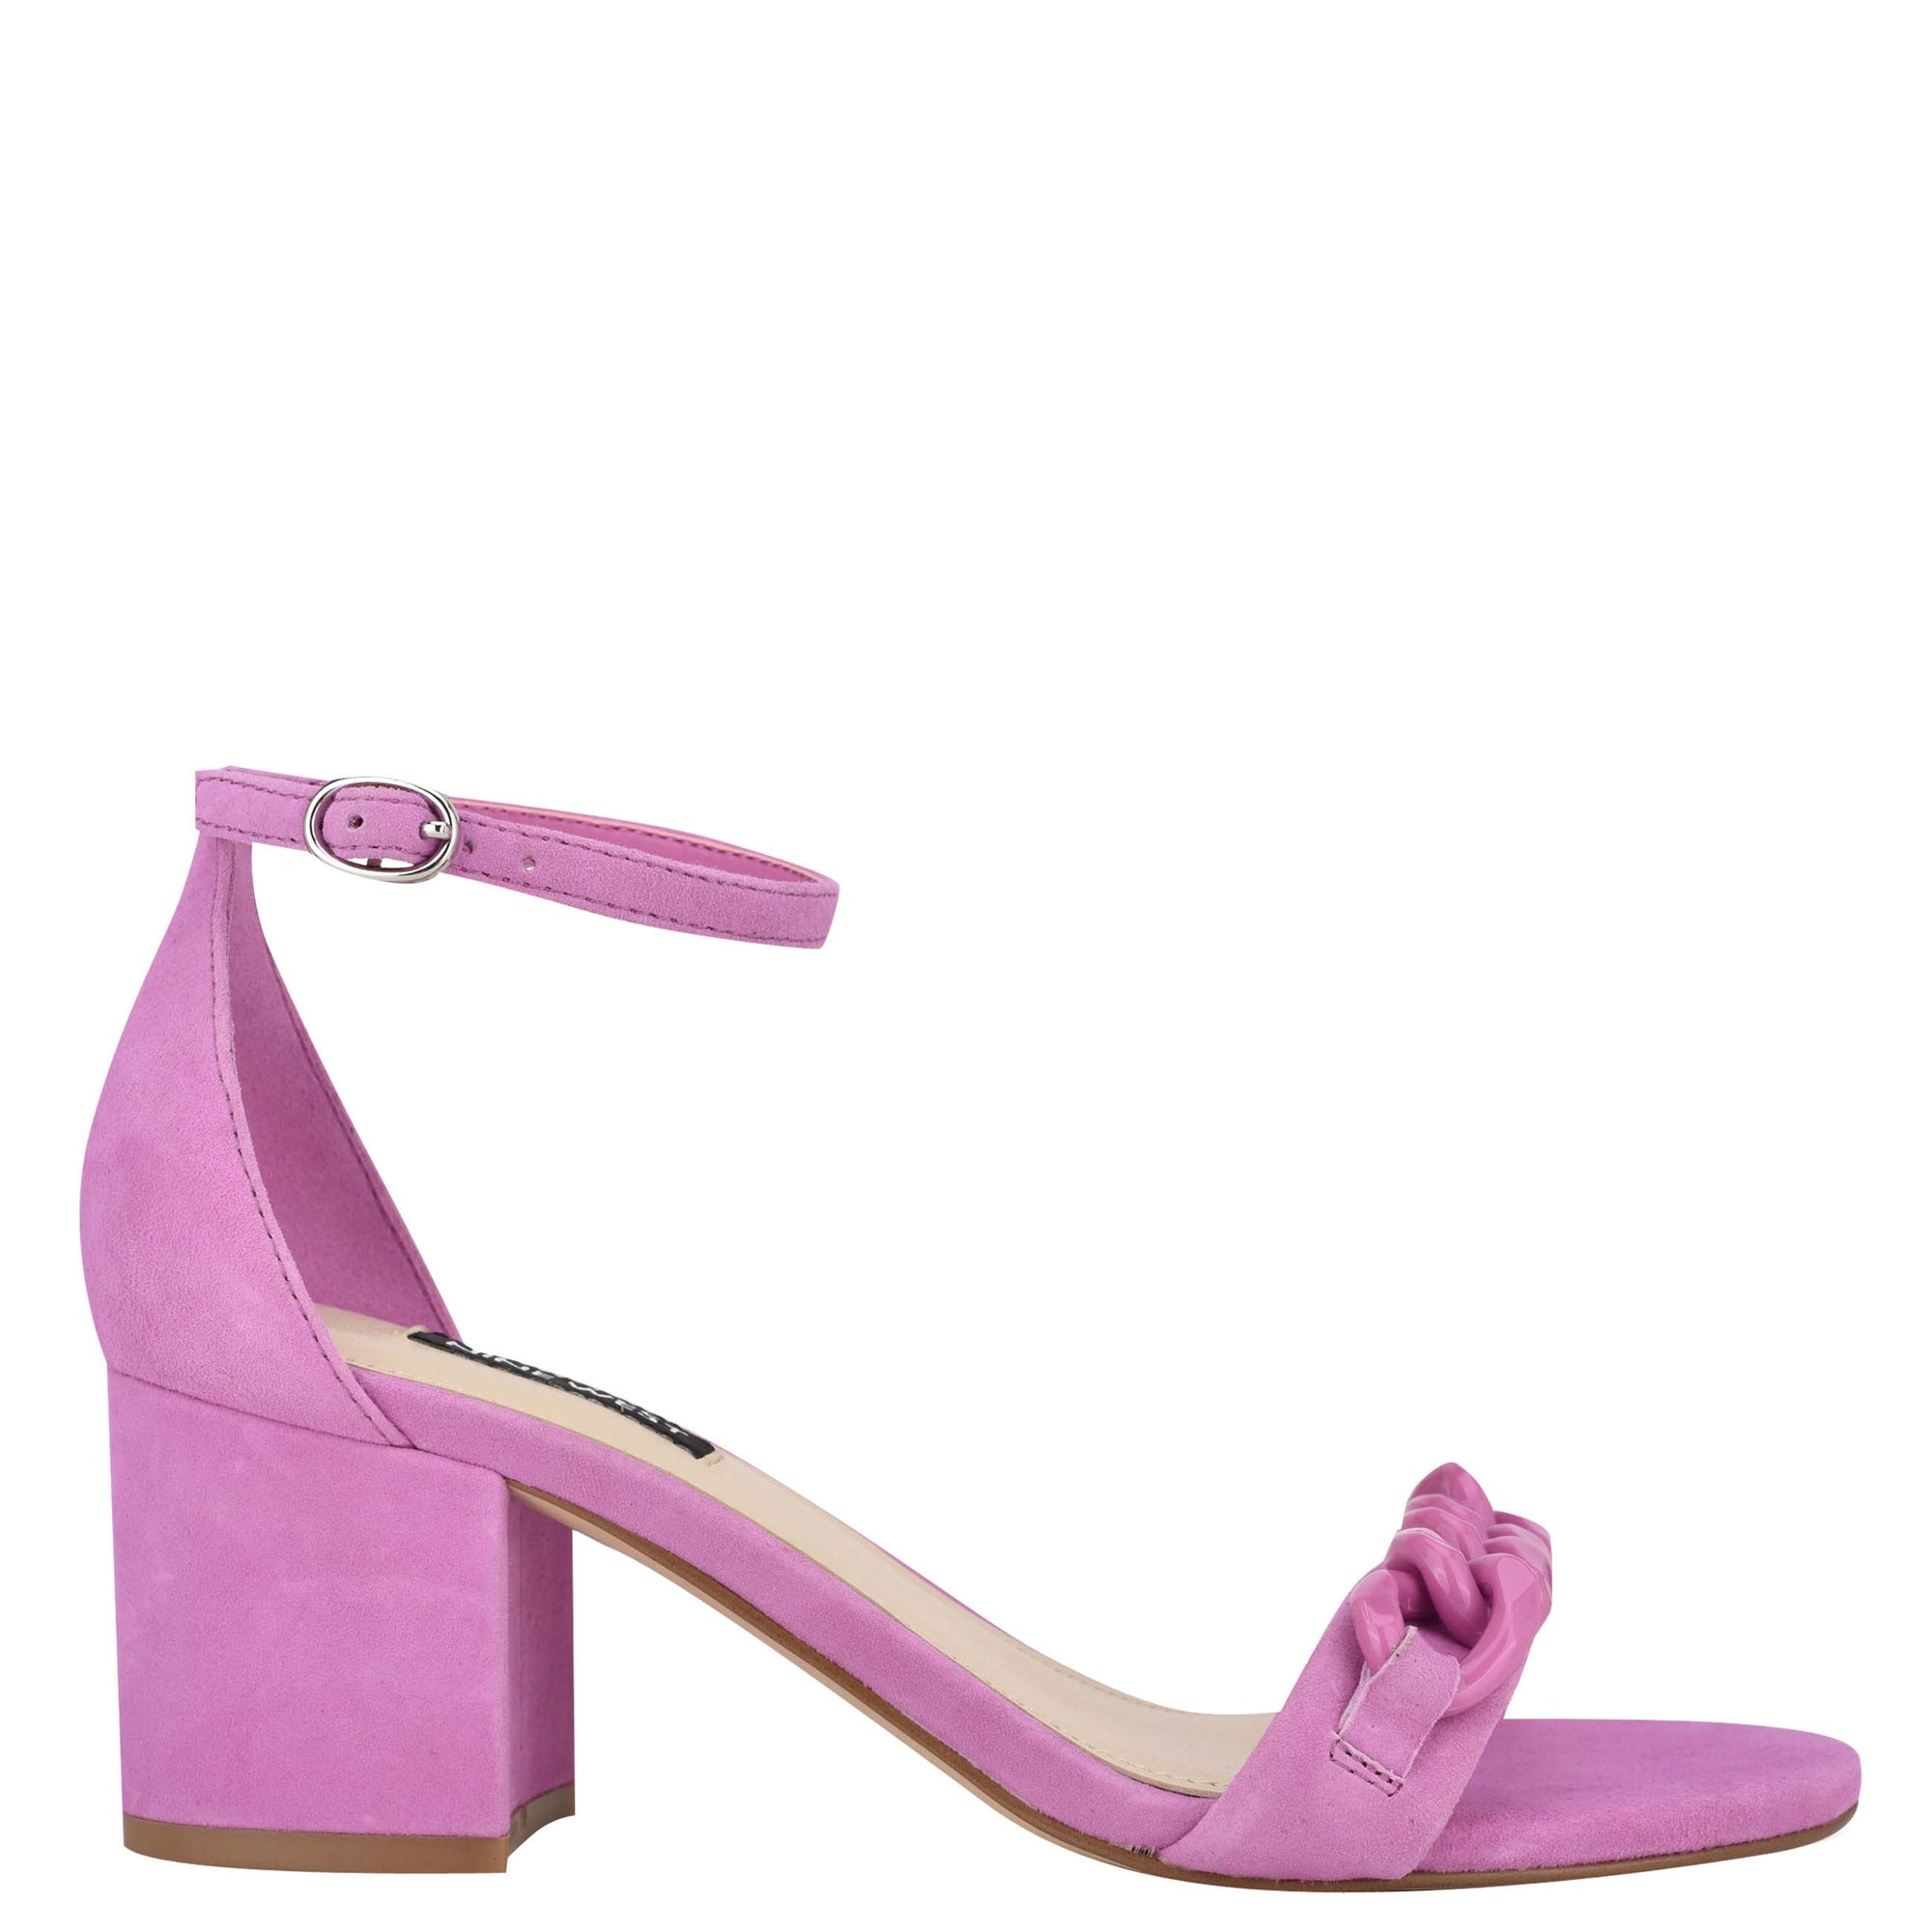 Kimba Ankle Strap Block Heel Sandals